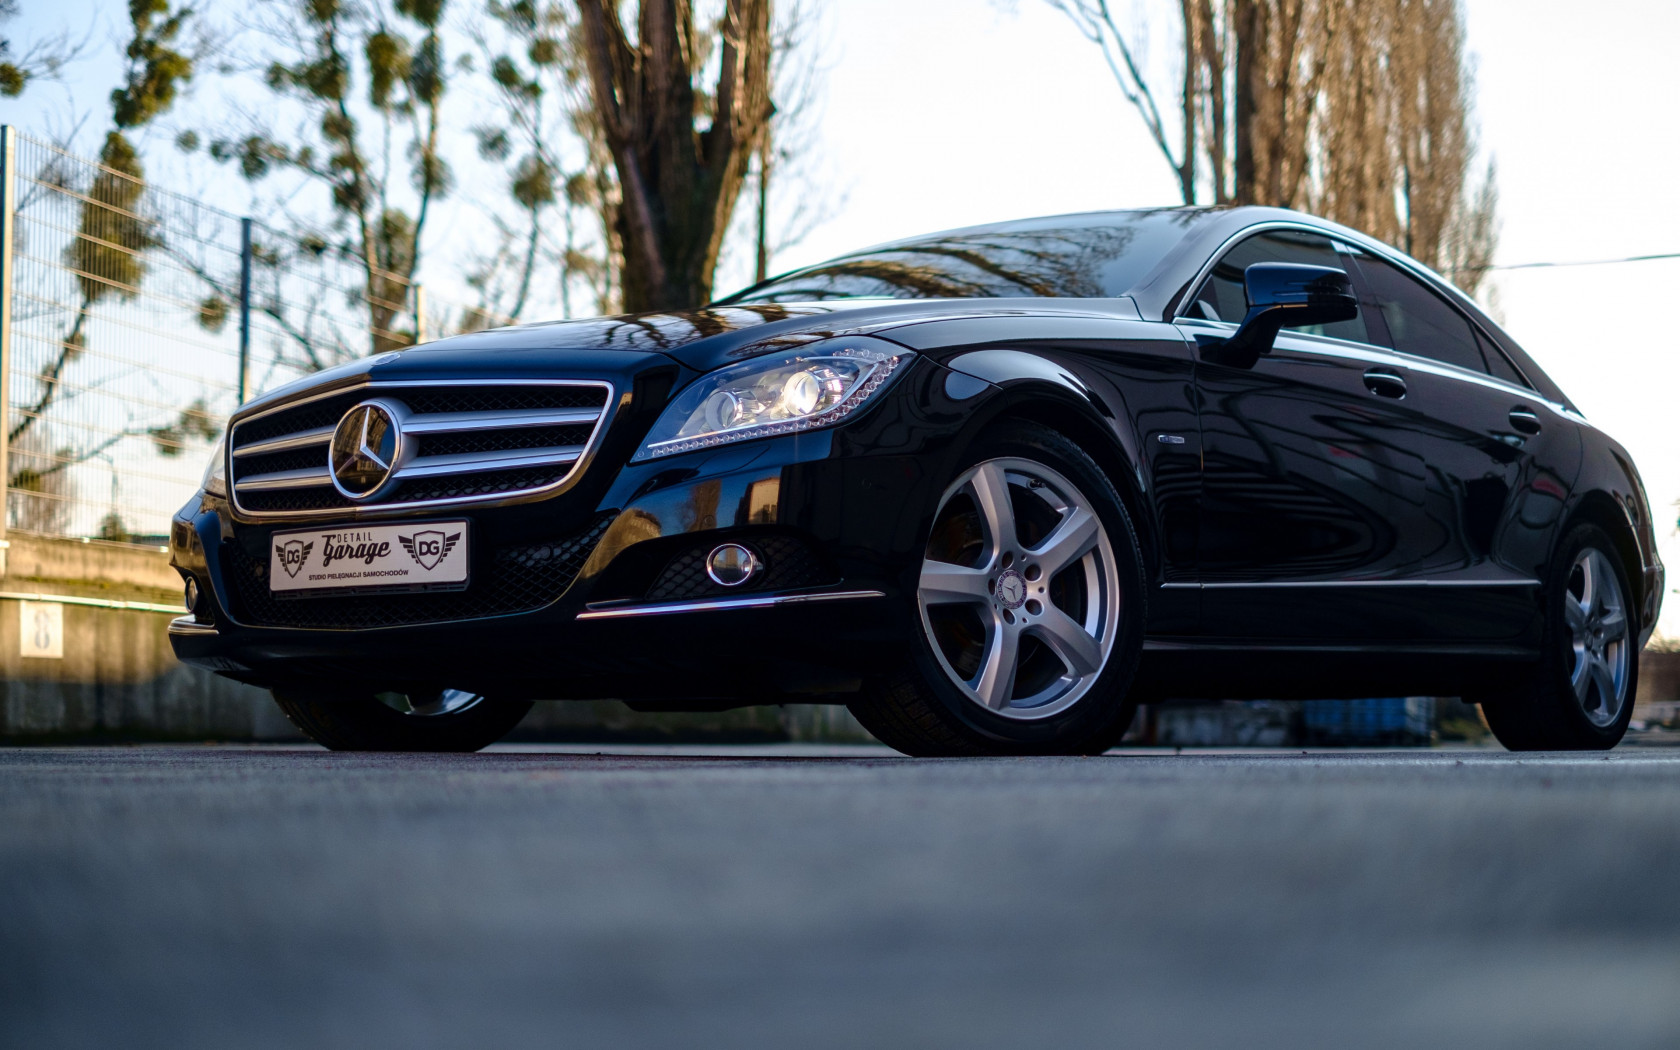 Mercedes Benz CLS wallpaper 1680x1050